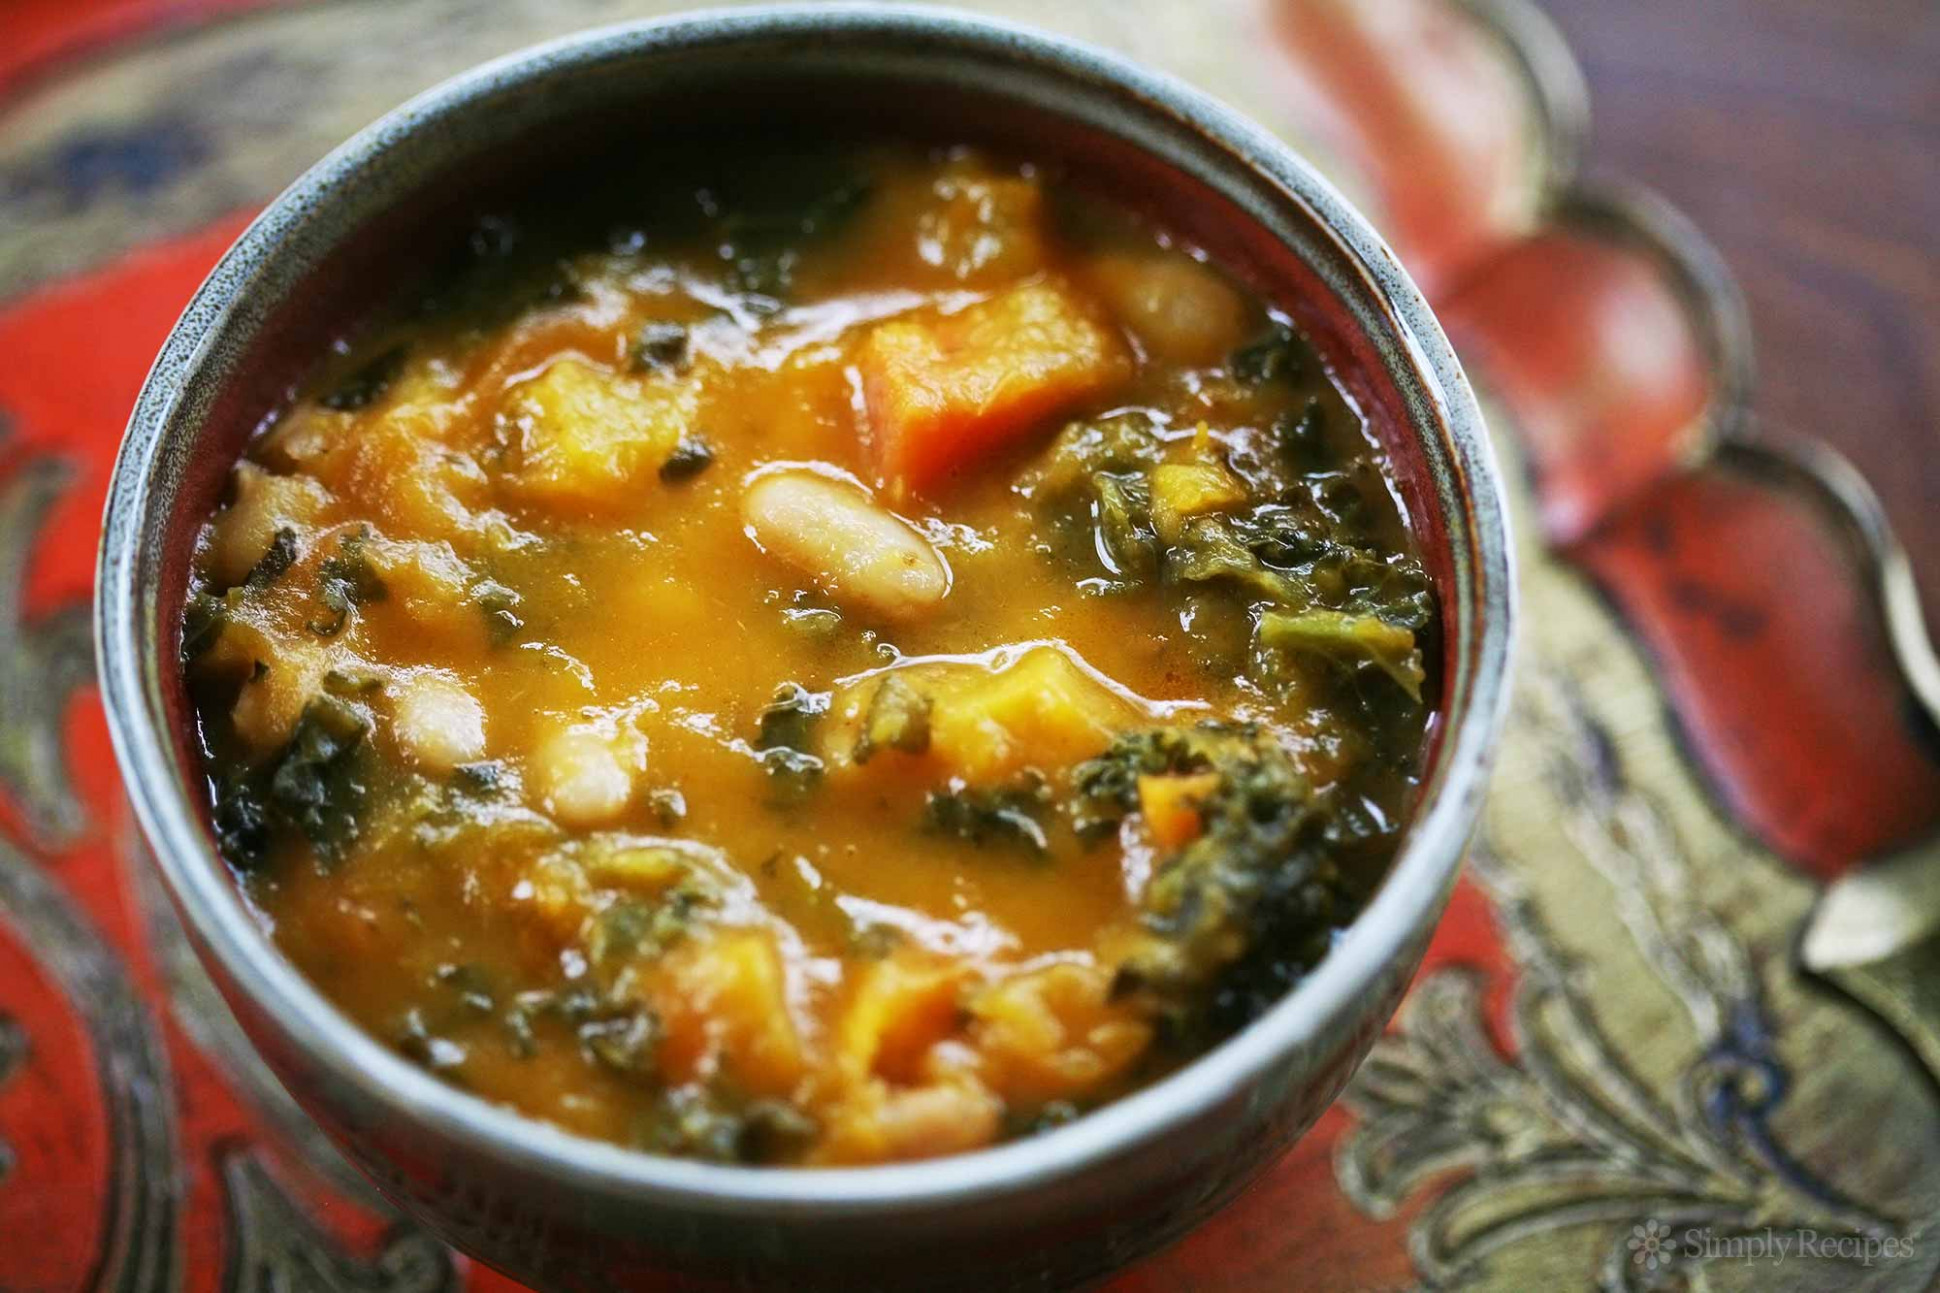 Kale And Roasted Vegetable Soup Recipe | SimplyRecipes